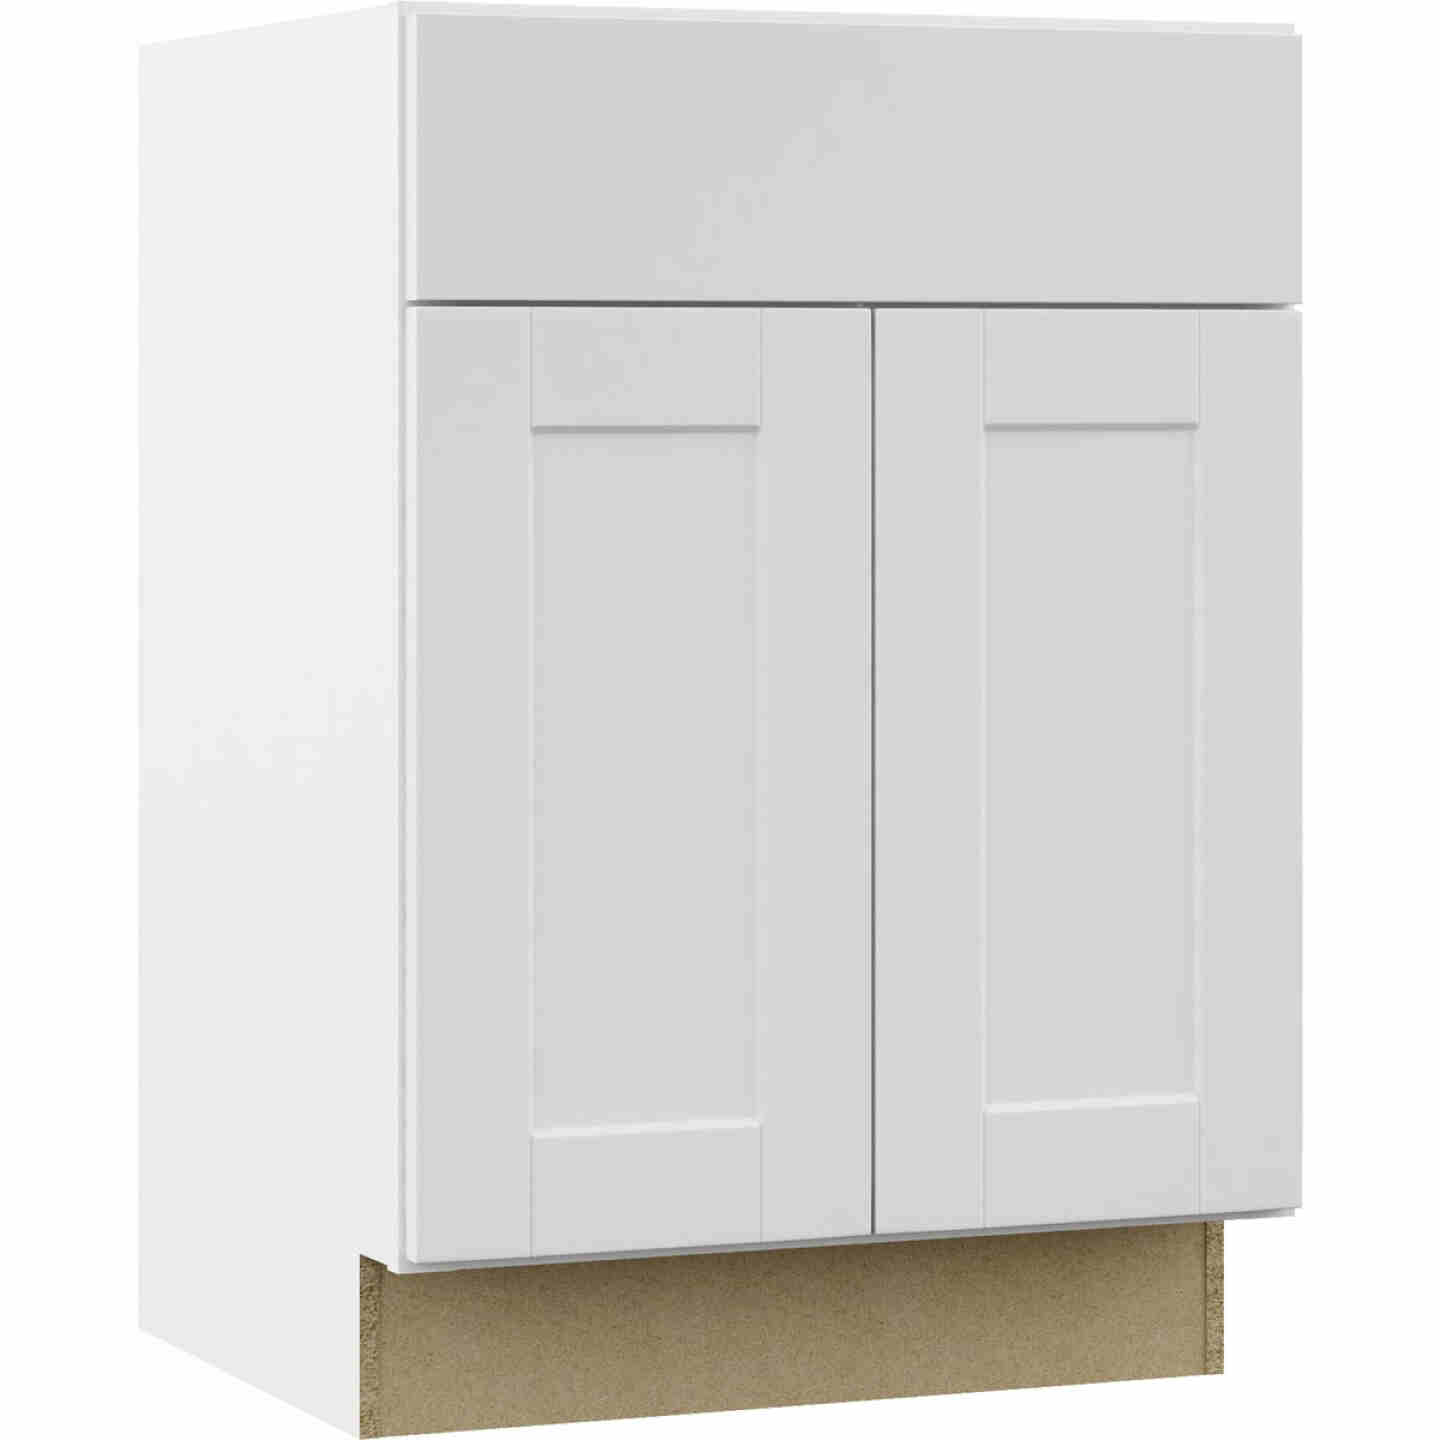 Continental Cabinets Andover Shaker 24 In. W x 34-1/2 In. H x 21 In. D White Vanity Base, 2 Door Image 1